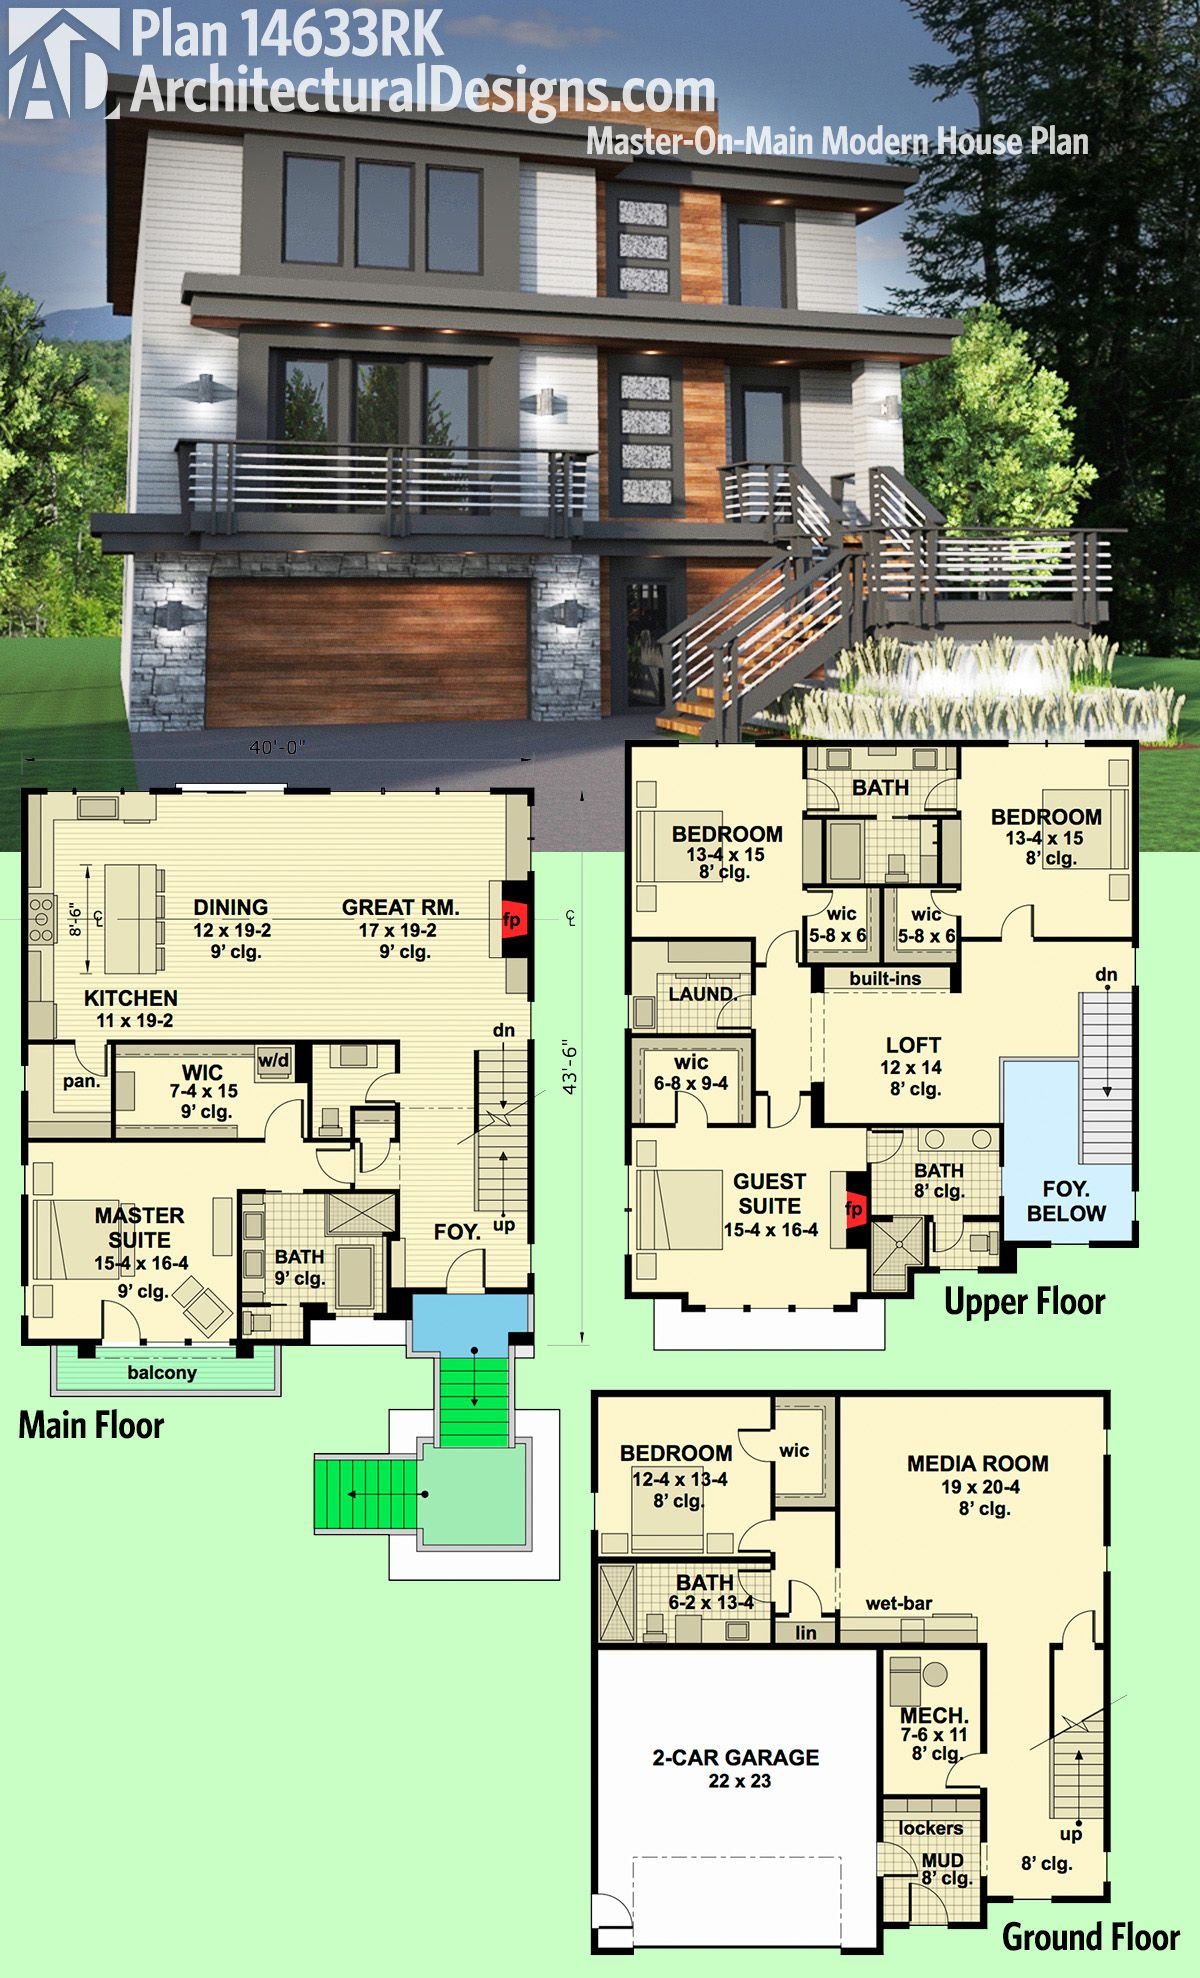 Plan 14633rk master on main modern house plan modern for House plan finder